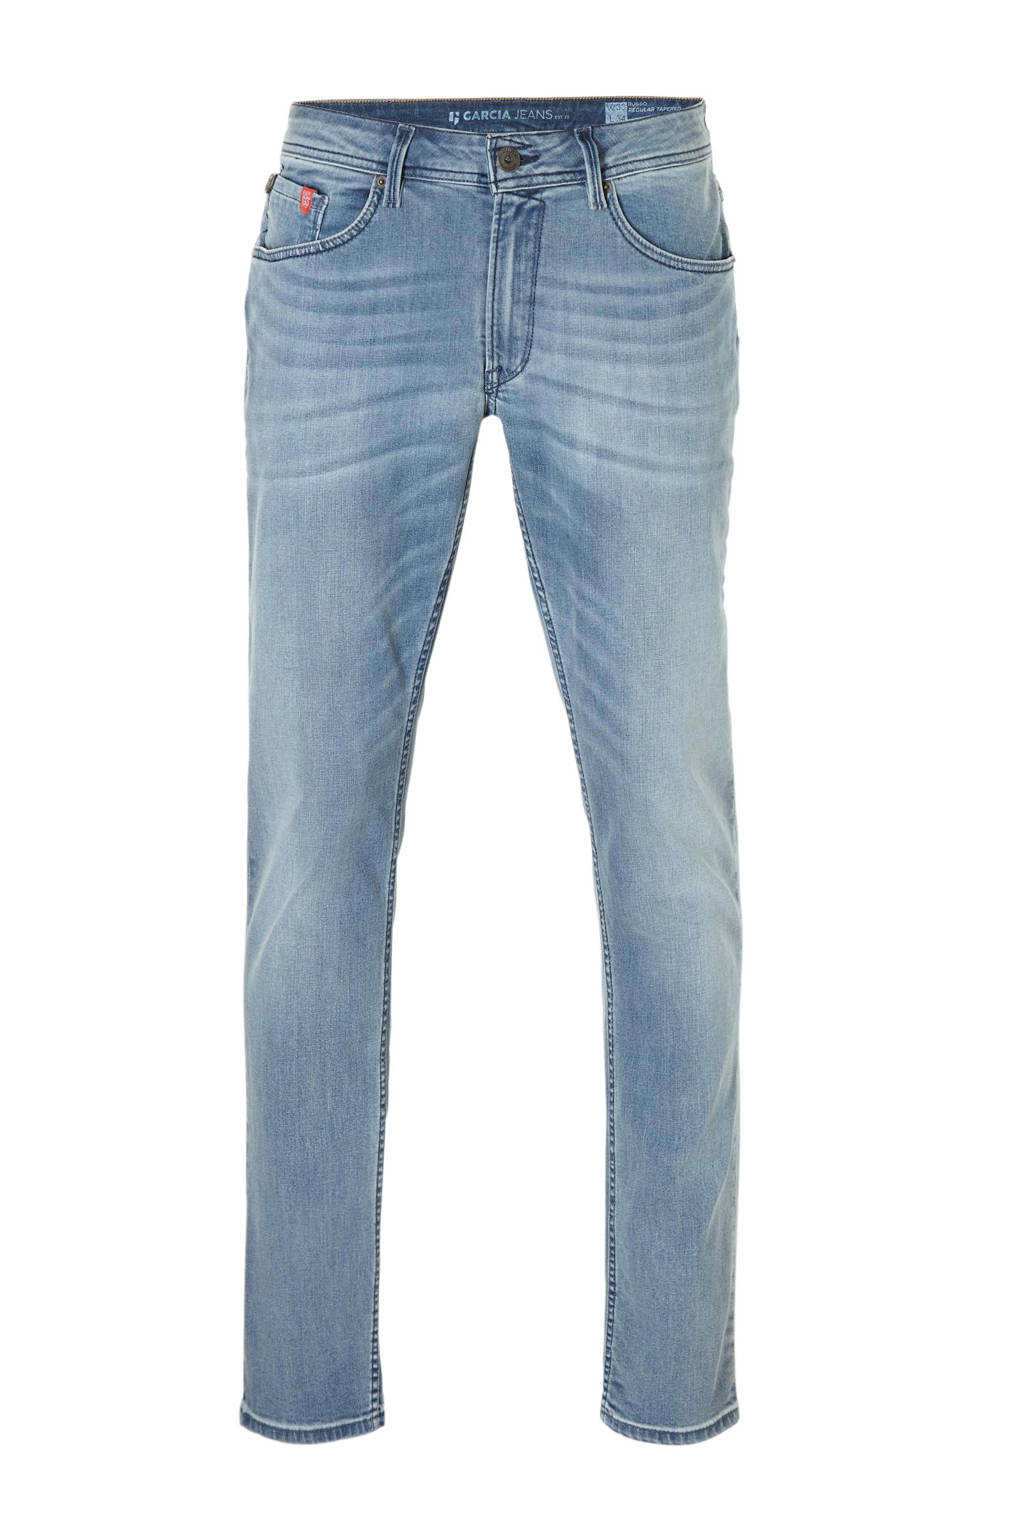 Garcia  tapered jeans tapered, Blue denim